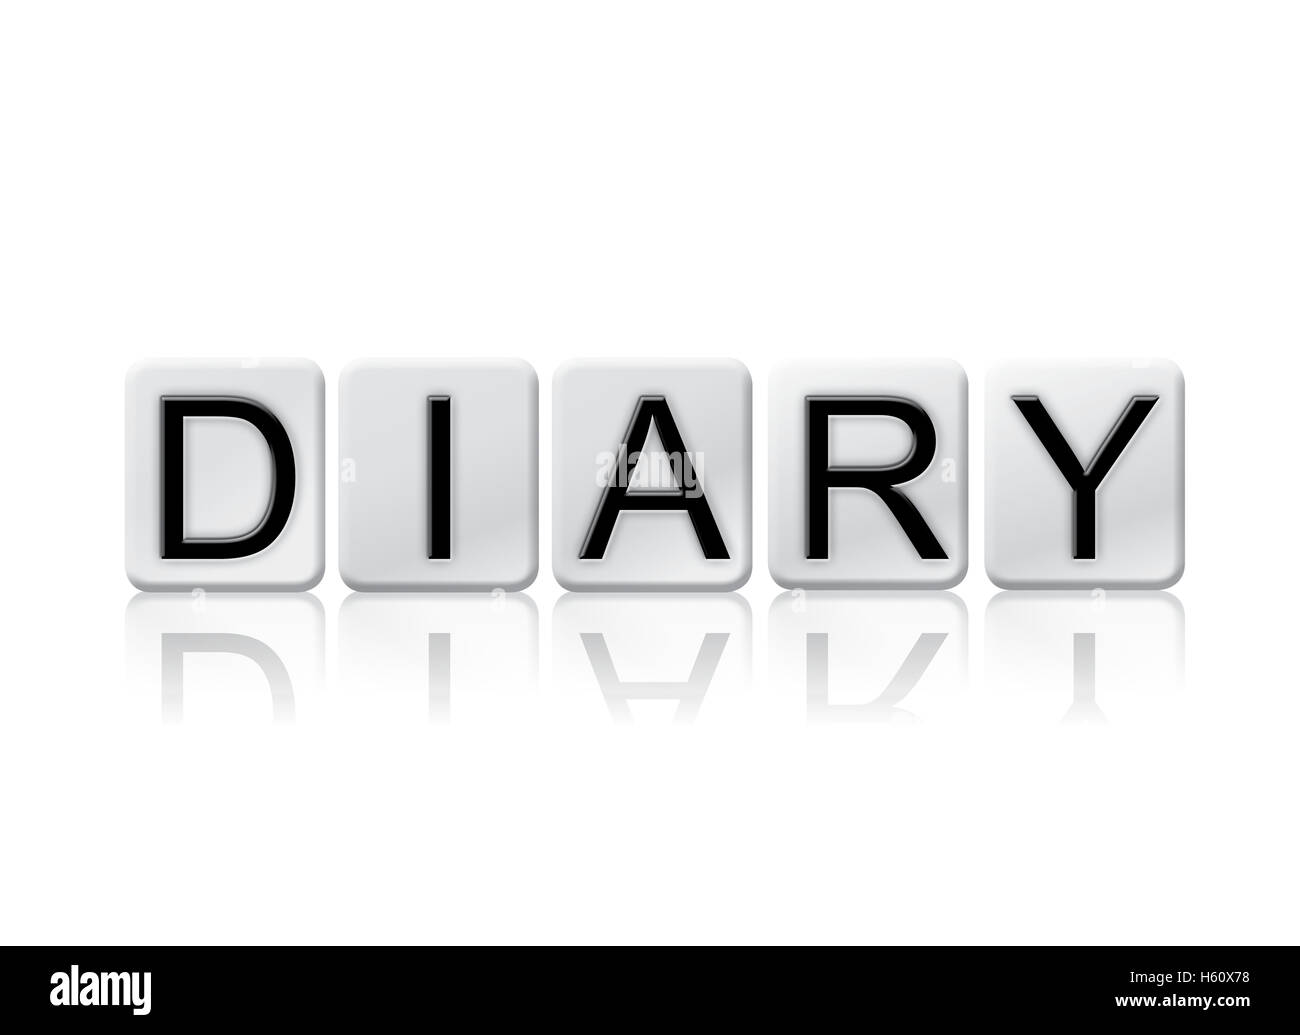 the word  u0026quot diary u0026quot  written in tile letters isolated on a